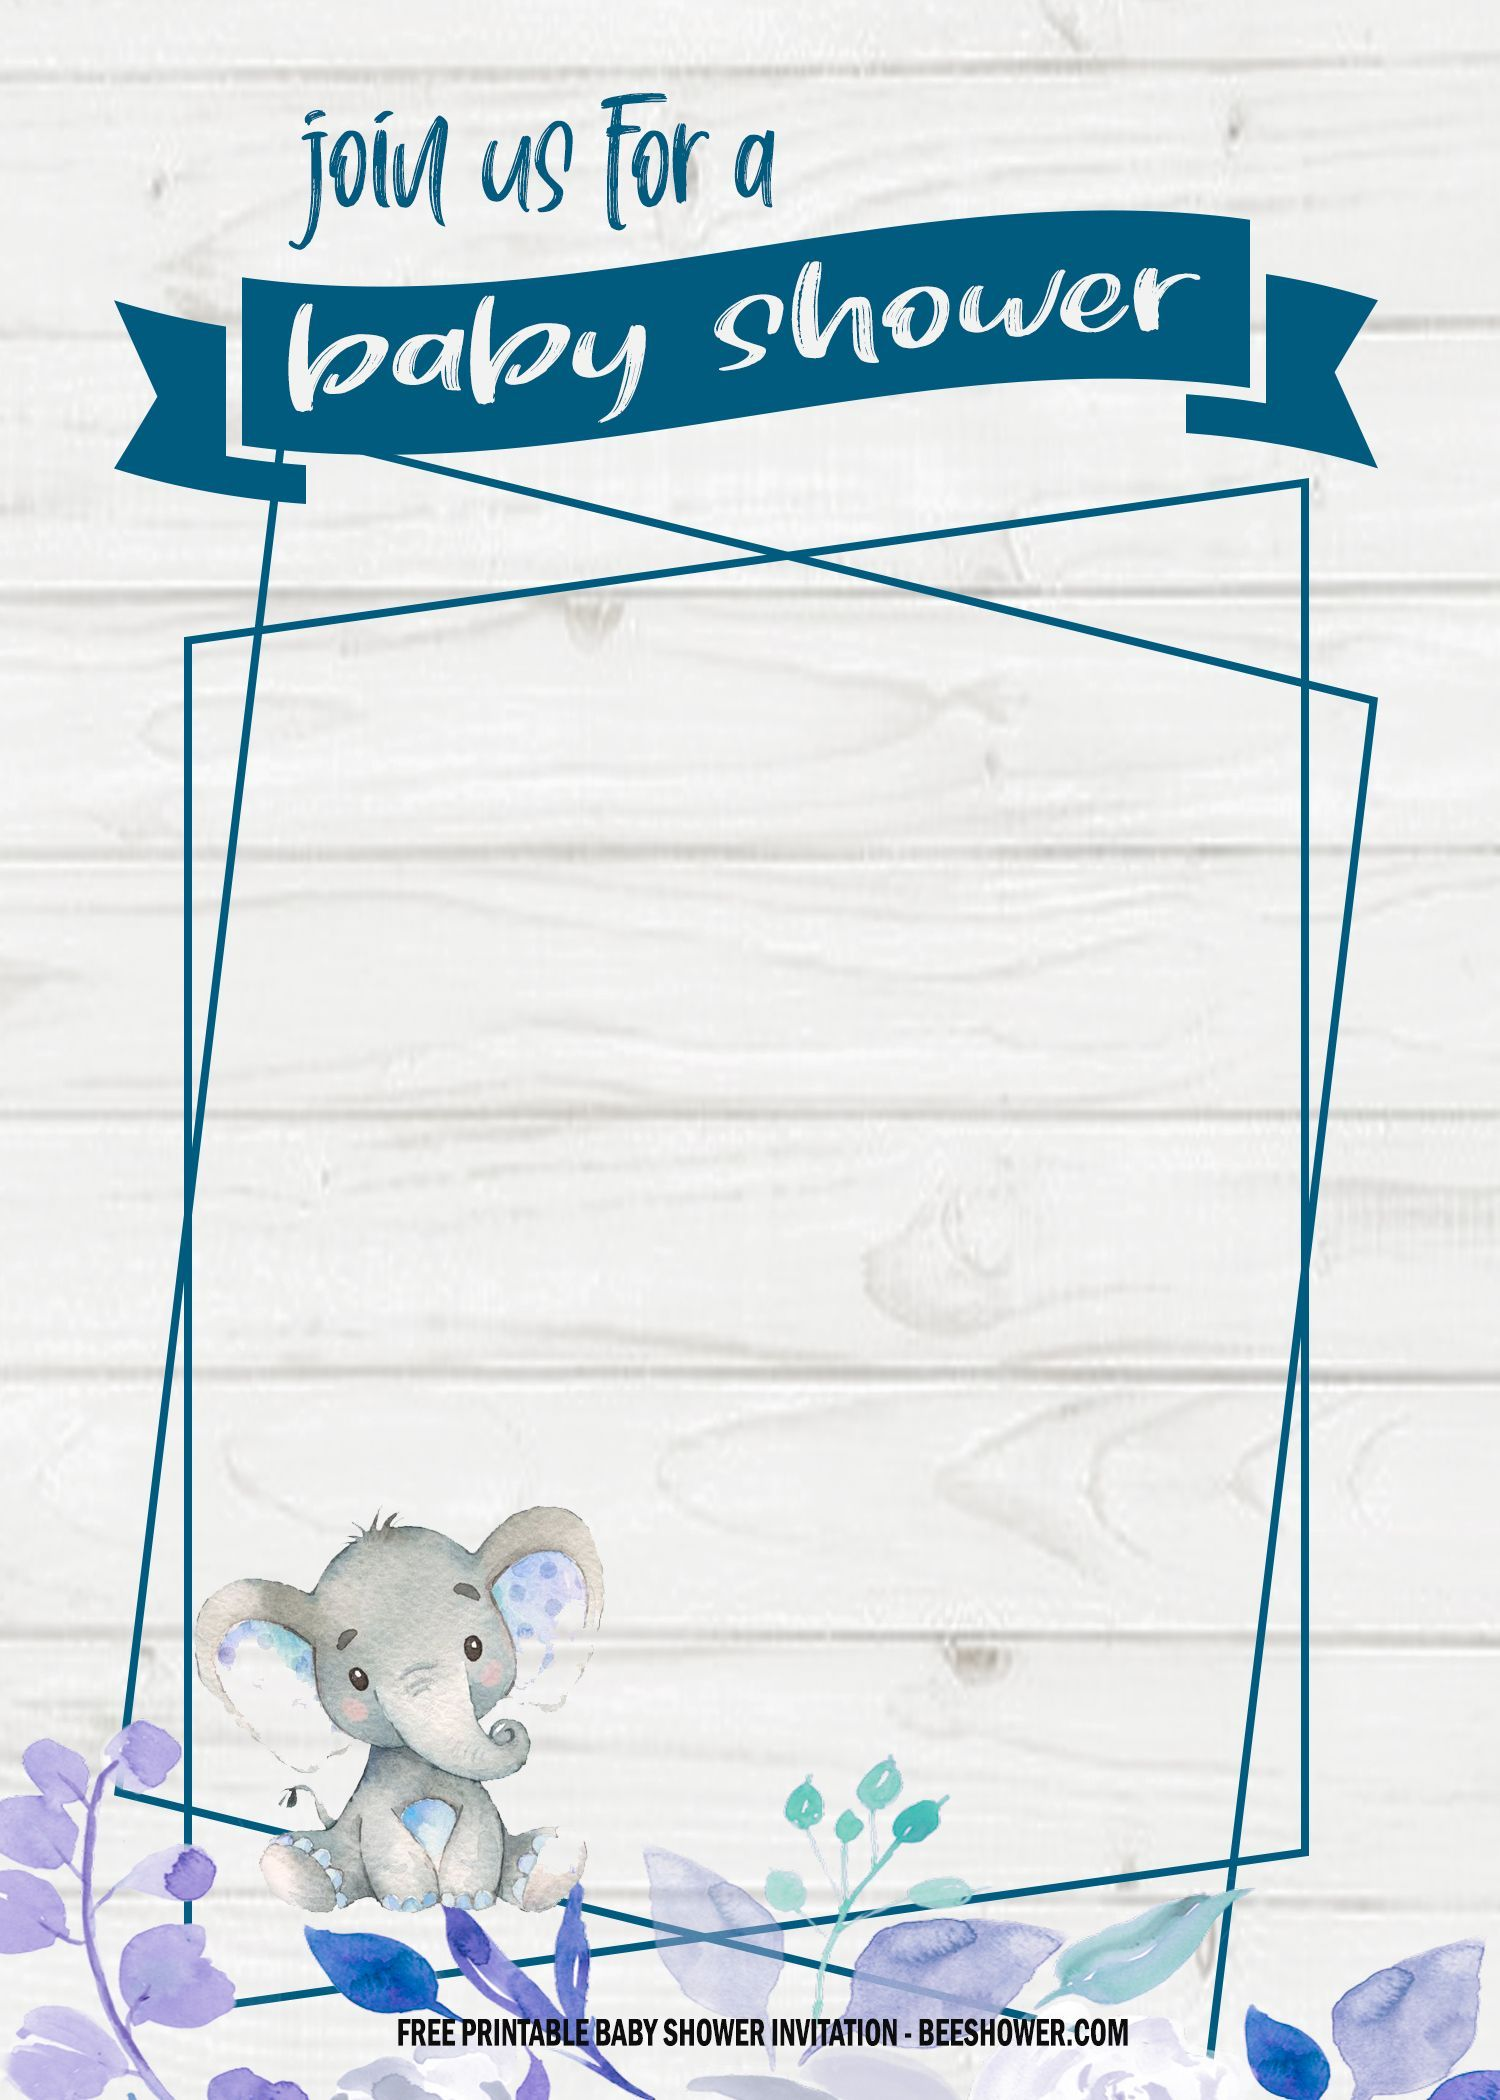 6 Free Blue Elephant Themed Birthday And Baby Shower Invitation Templates Free Printable Baby Shower Invitations Free Baby Shower Invitations Boy Baby Shower Invitations Templates